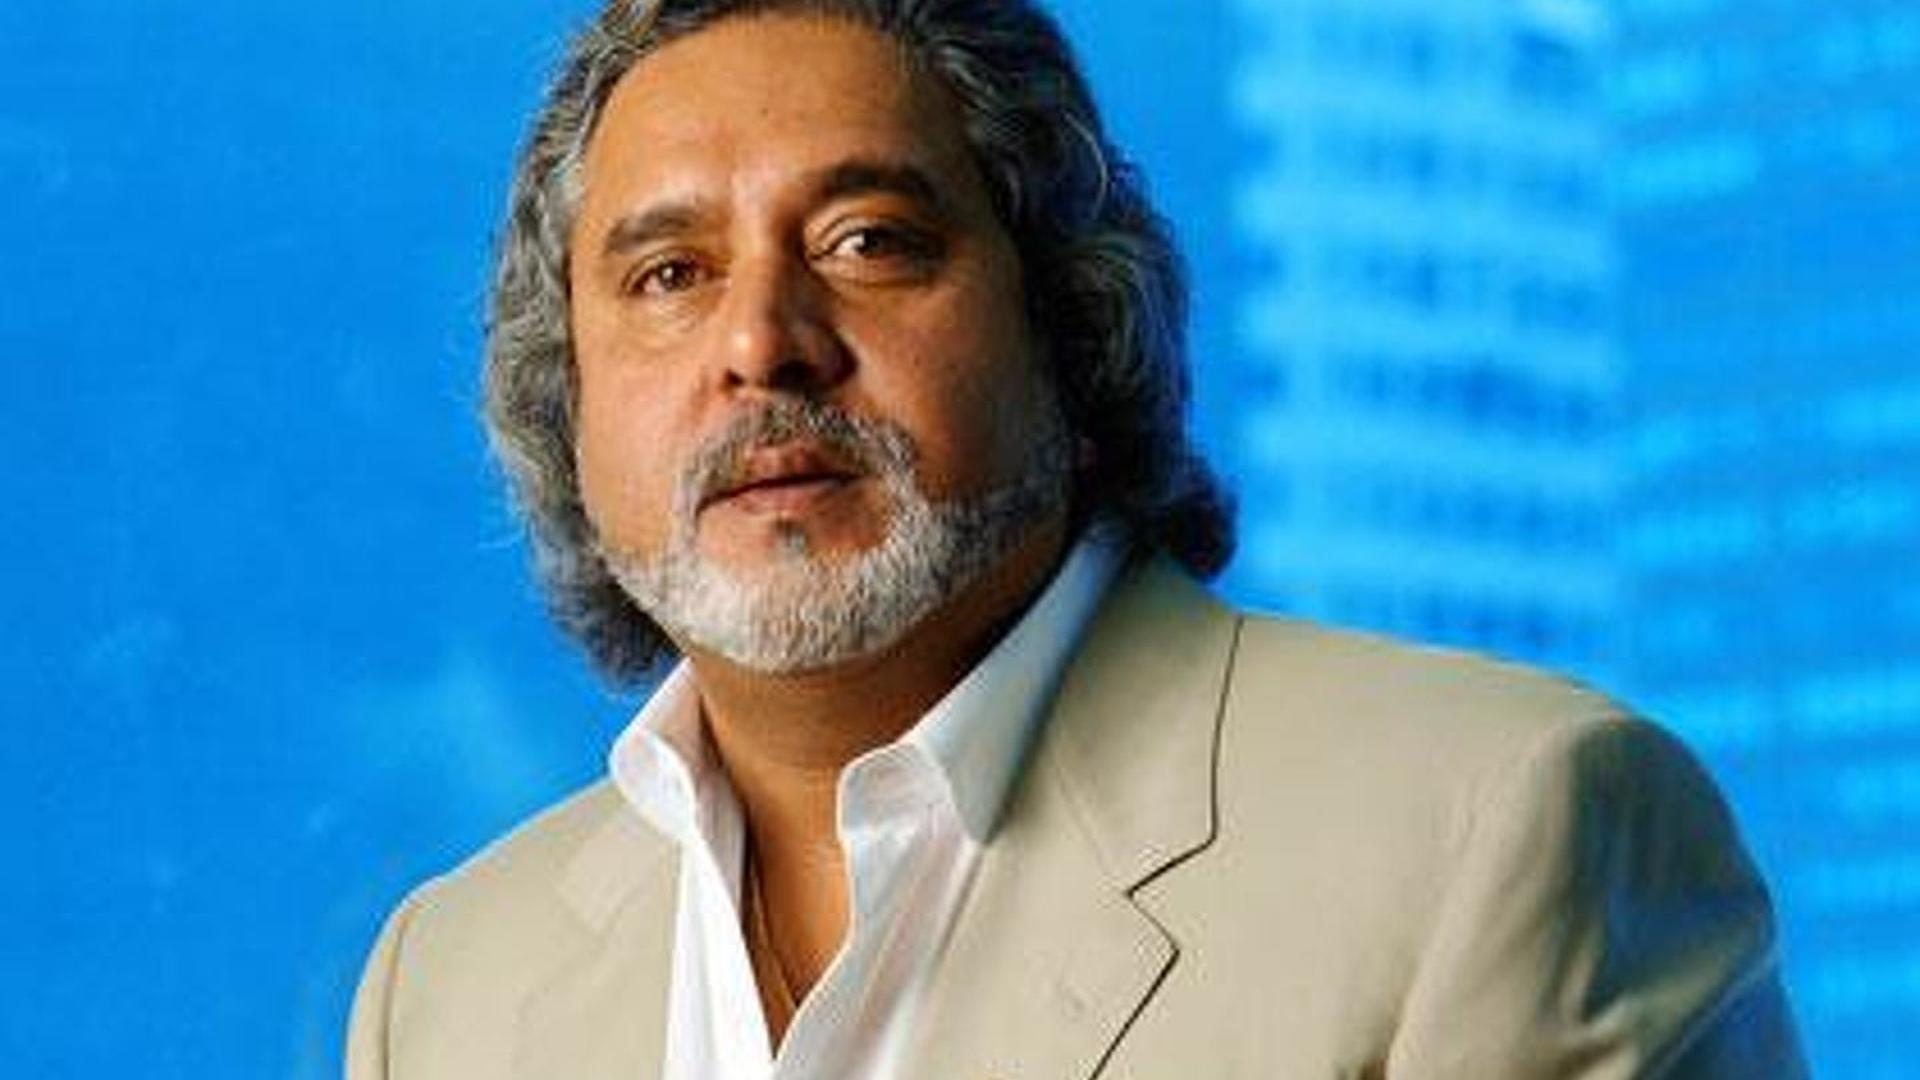 Authorities restrict travel for Mallya